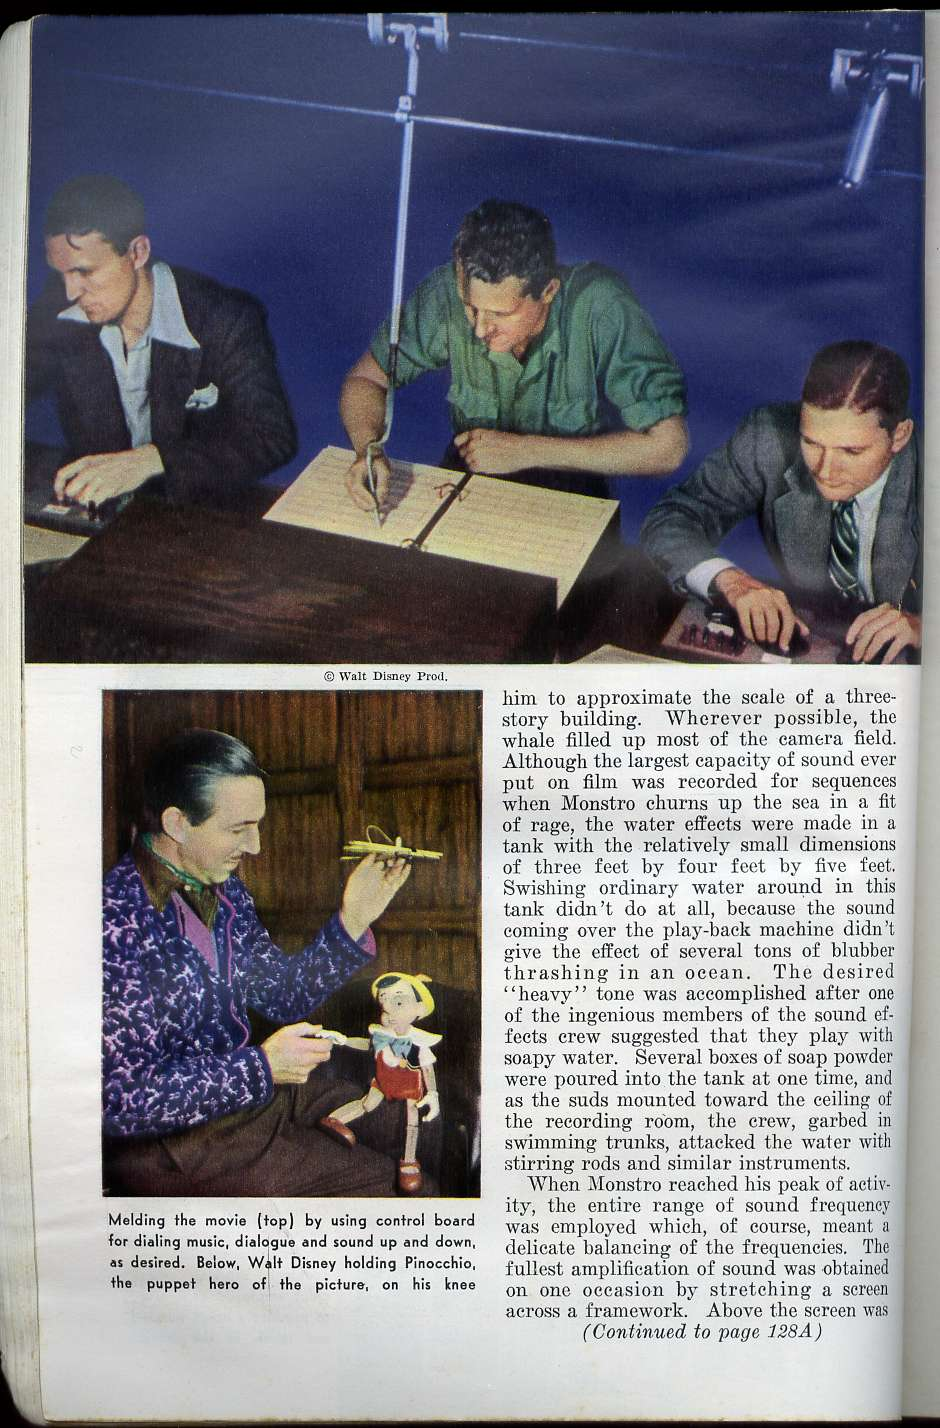 The Making Of Where Do Little Spiders: The Making Of Pinocchio